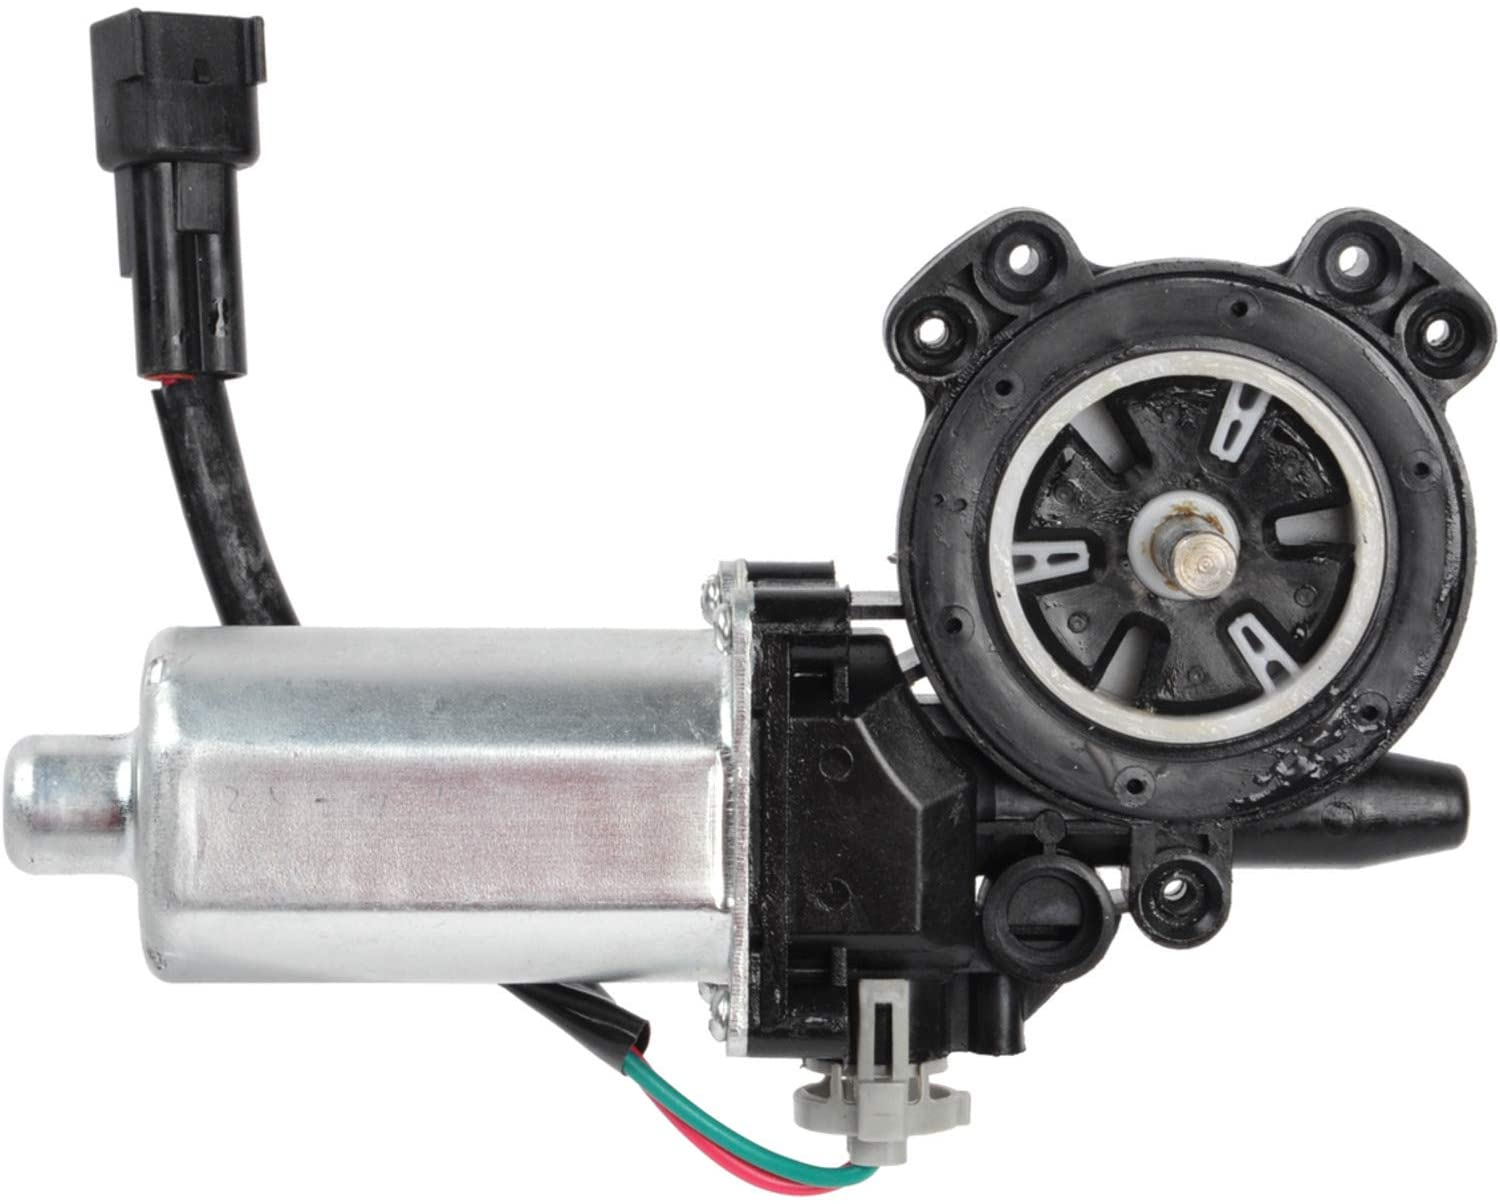 Cardone Select 82-3039 New Window Lift Motor